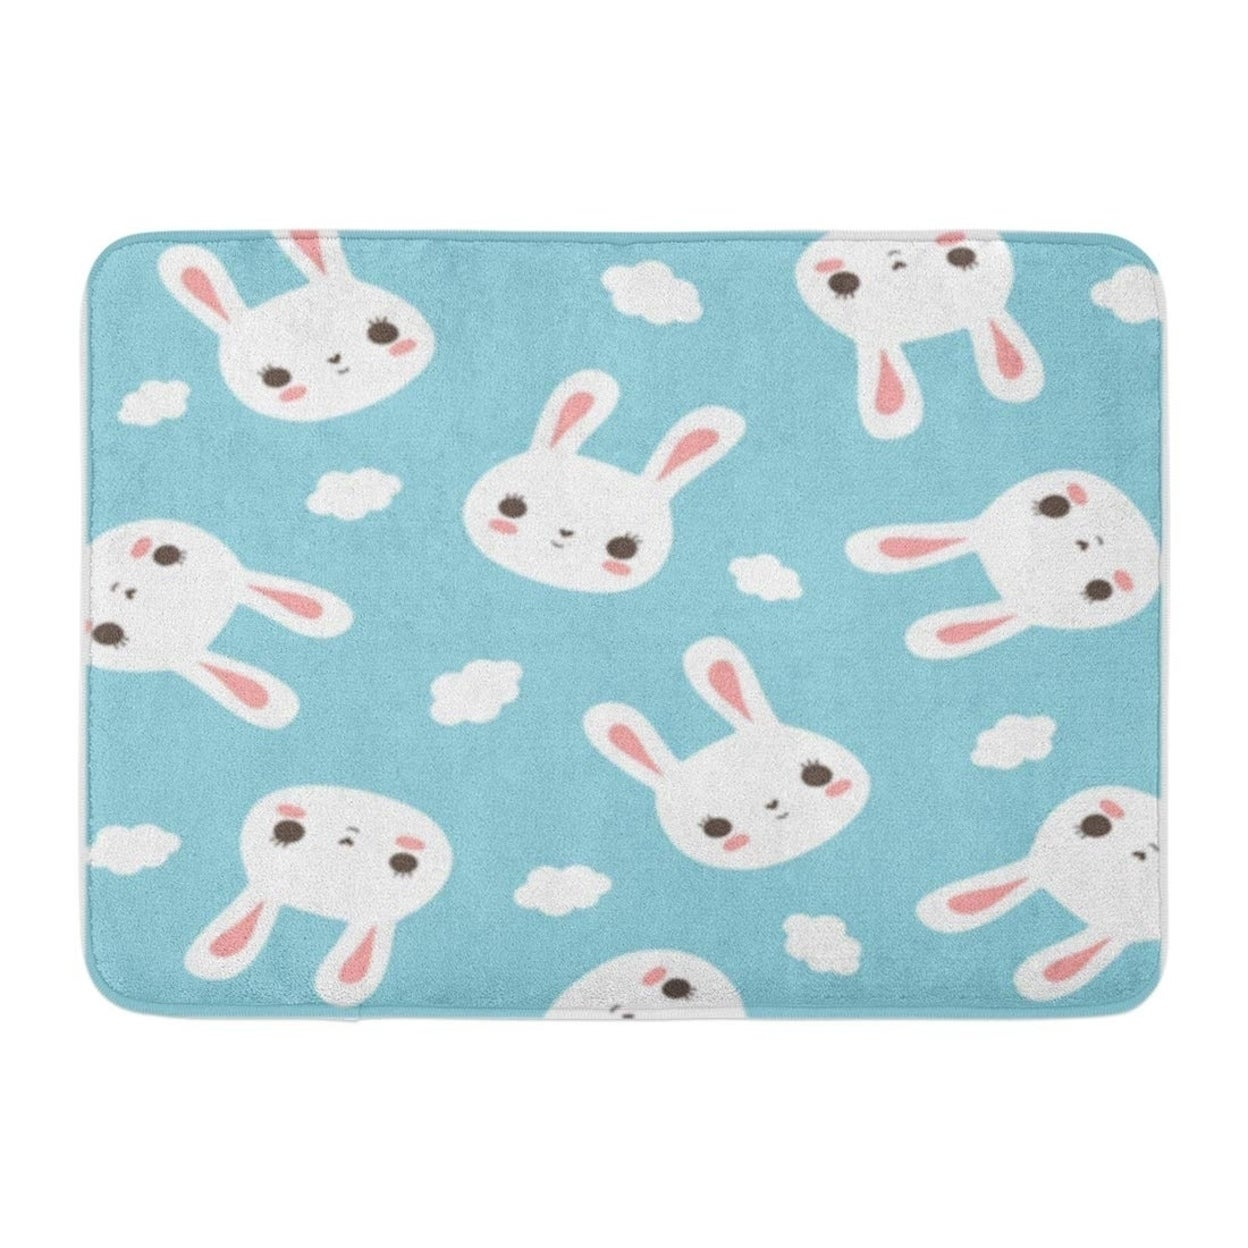 Shop Blue Cute Bunny And Clouds Pattern In Pastel Doormat Floor Rug Bath Mat 30x18 Inch Multi On Sale Overstock 31779895